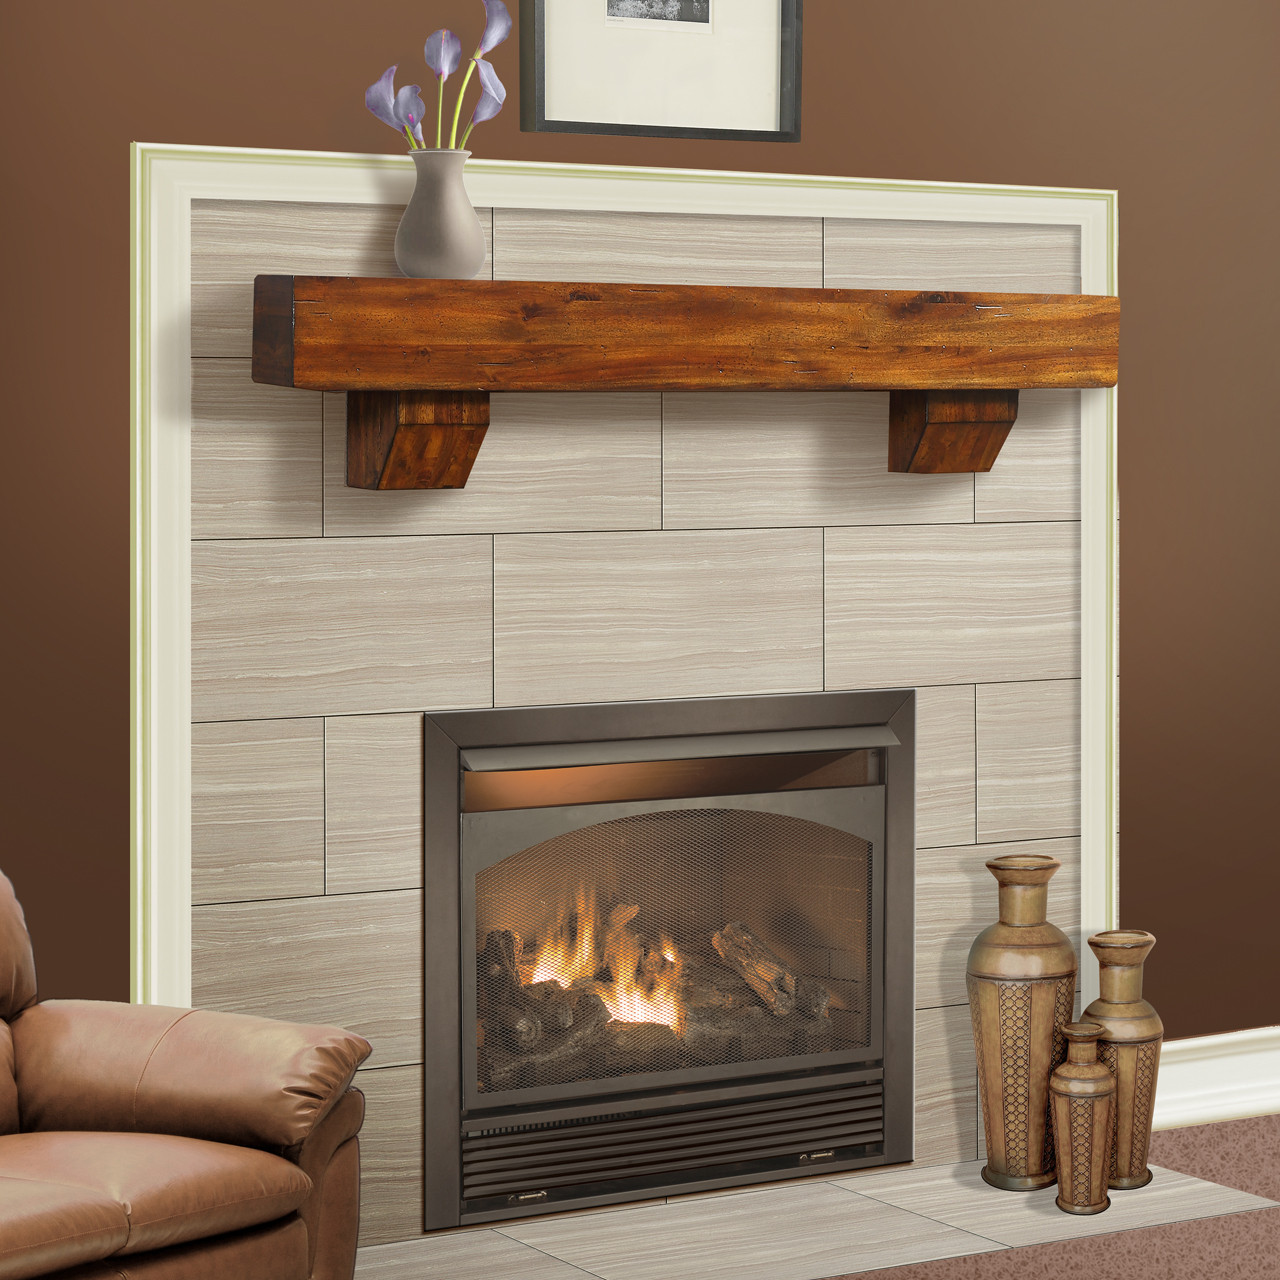 Duluth Forge 60 Inch Fireplace Shelf Mantel With Corbels   Brown Finish